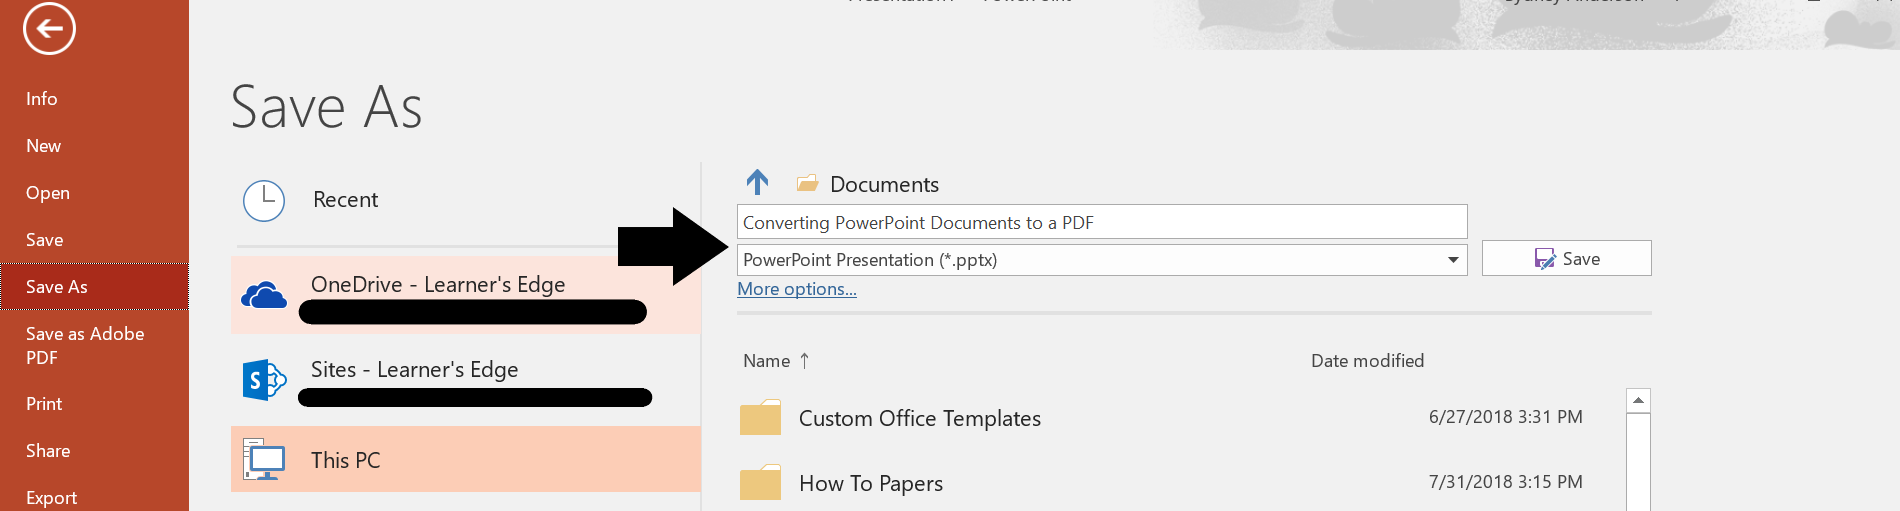 PowerPoint - Save as PPT